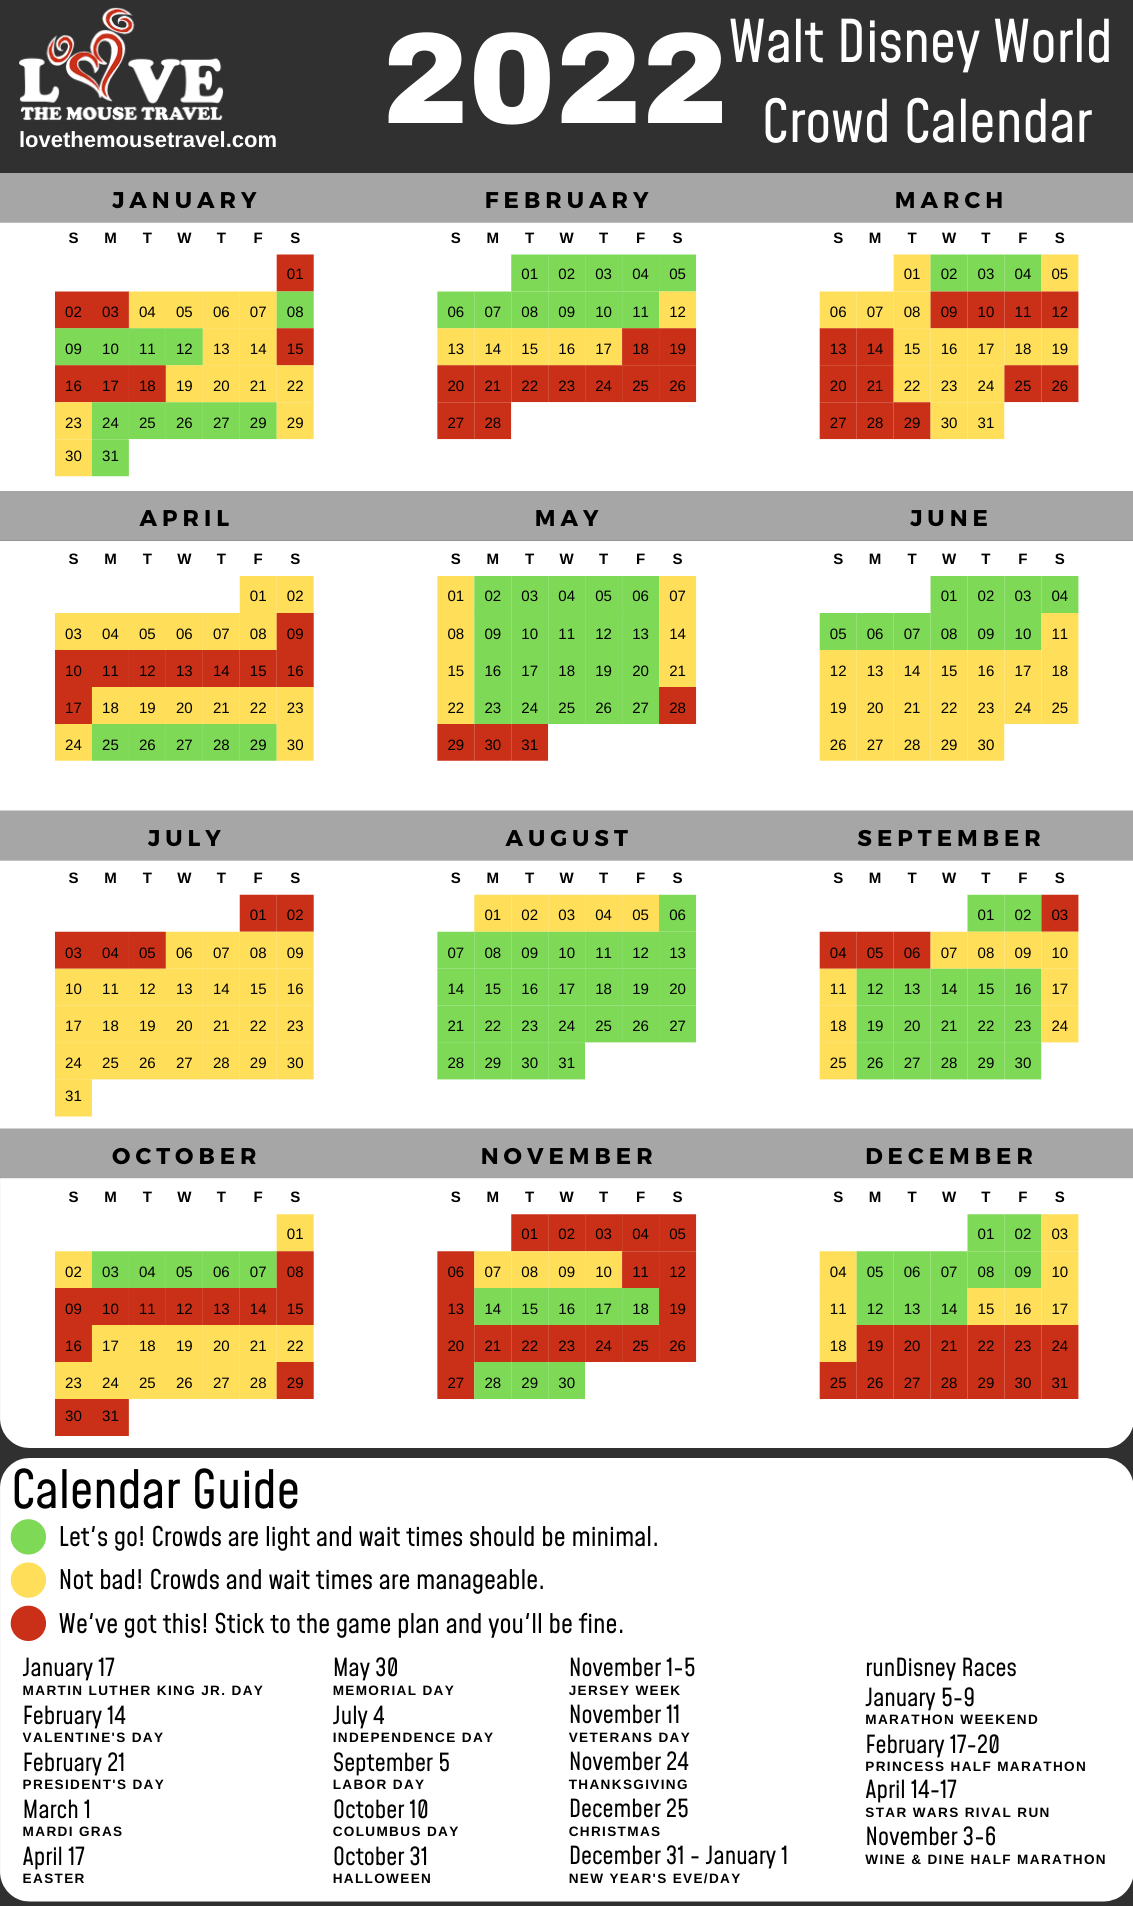 Universal Orlando Crowd Calendar 2022.Universal Orlando Crowd Calendar 2021 January Disney World Crowd Calendars 2020 Dad Knows Disney World Crowd Calendar Disney Crowds Crowd Calendar We Crunched Some Numbers And Looked Back At Crowd